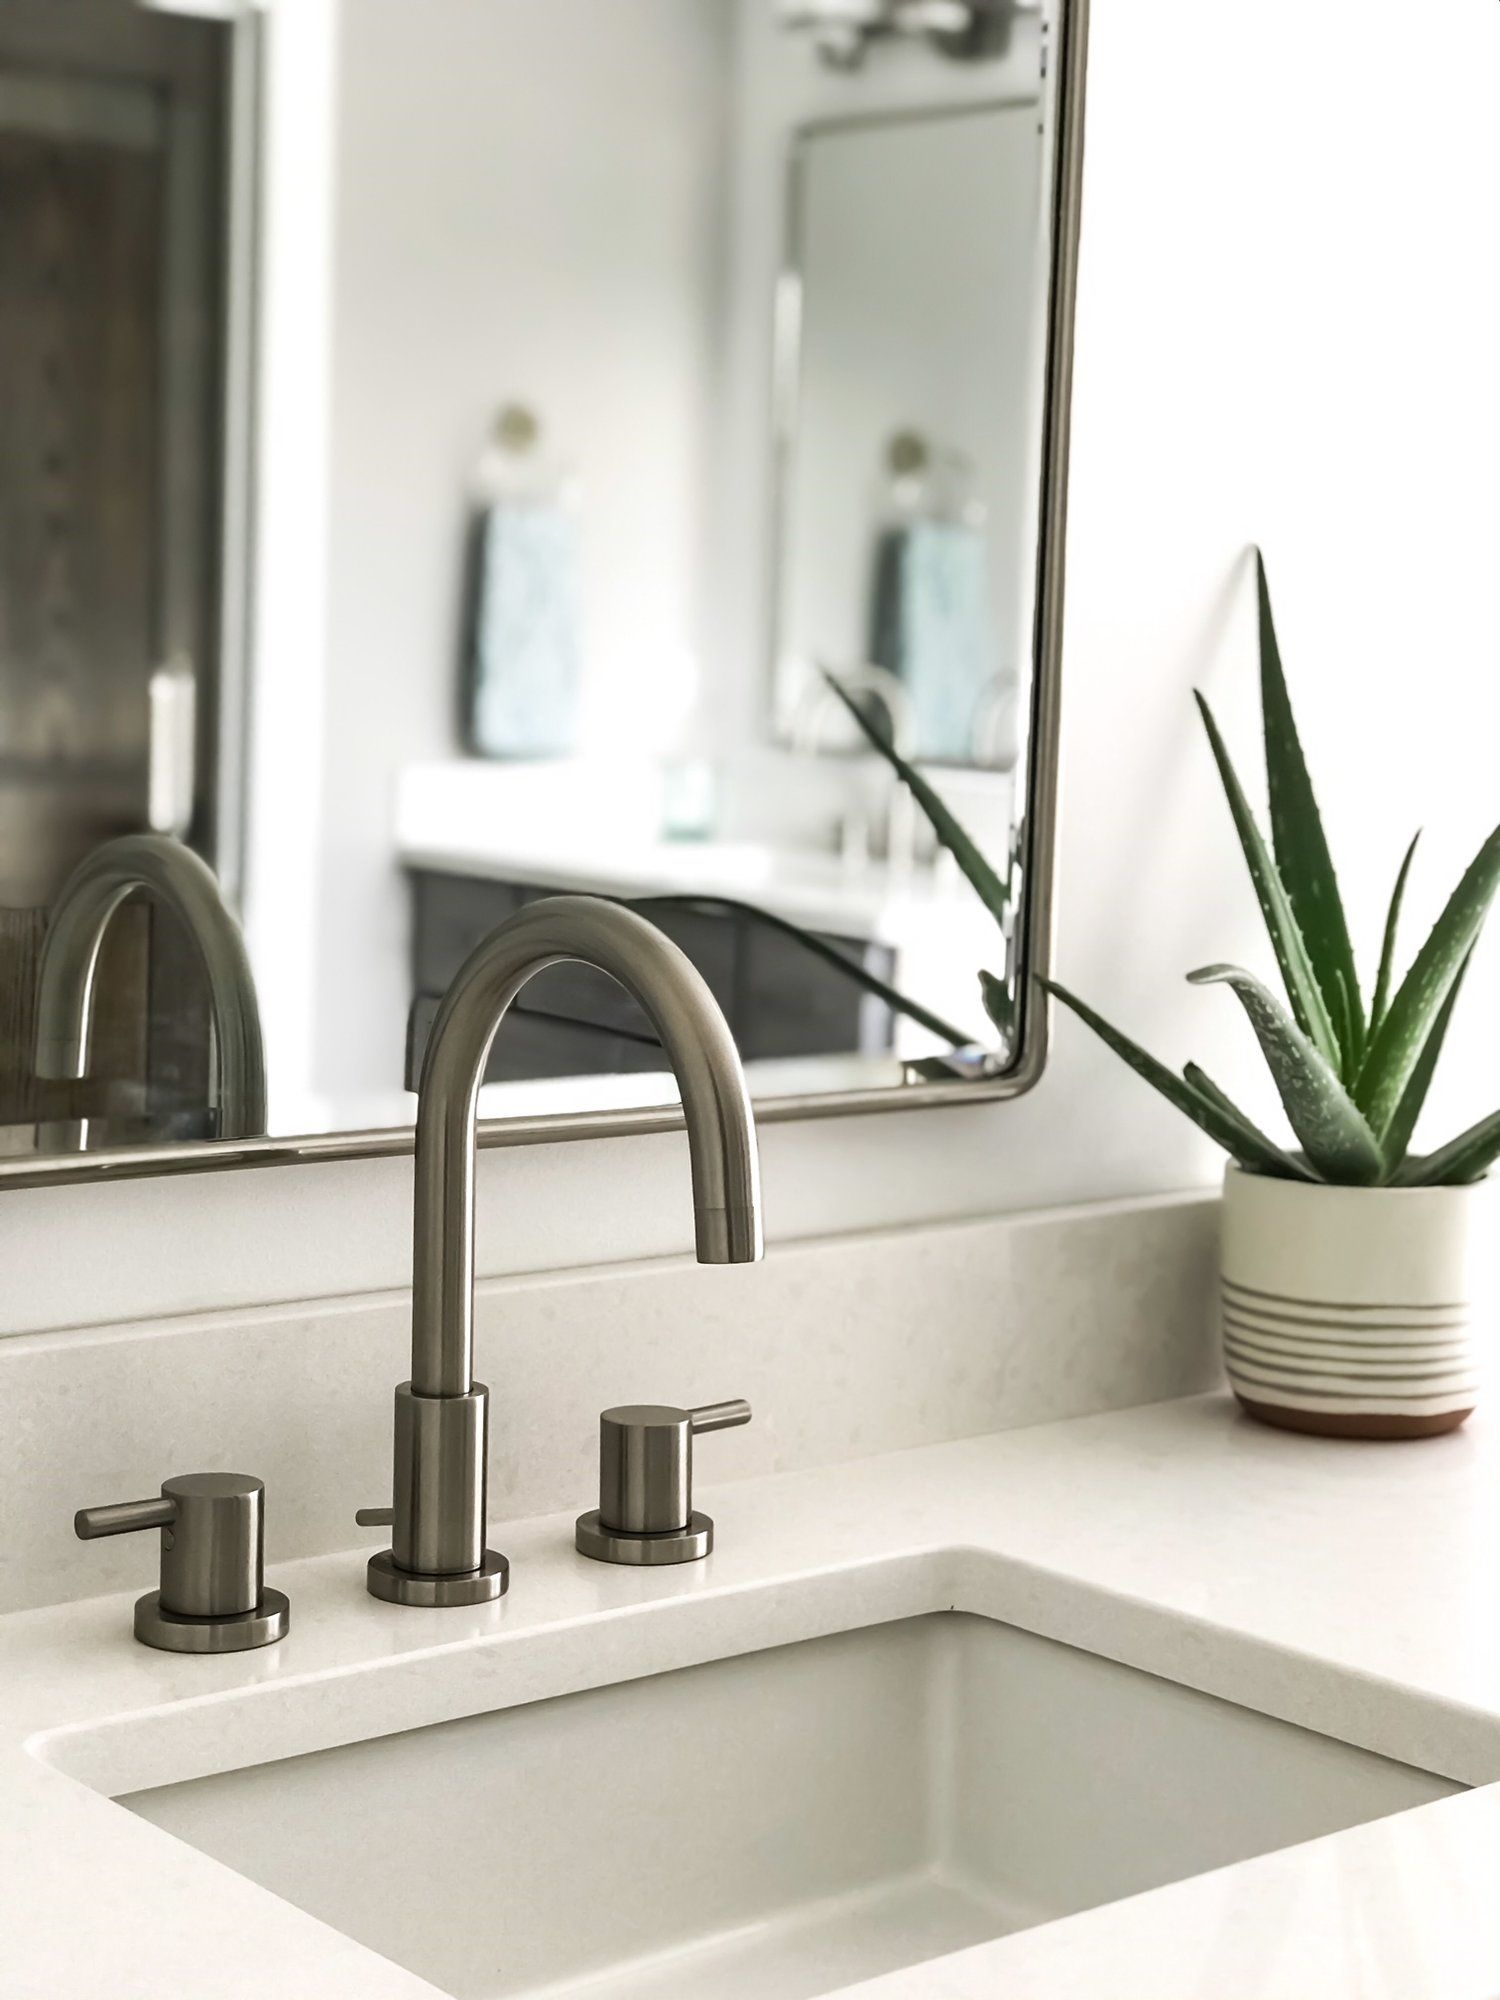 Home Design And Decor Ideas And Inspiration First Thyme Mom Modern Bathroom Faucets Modern Bathroom Sink Brass Bathroom Faucets